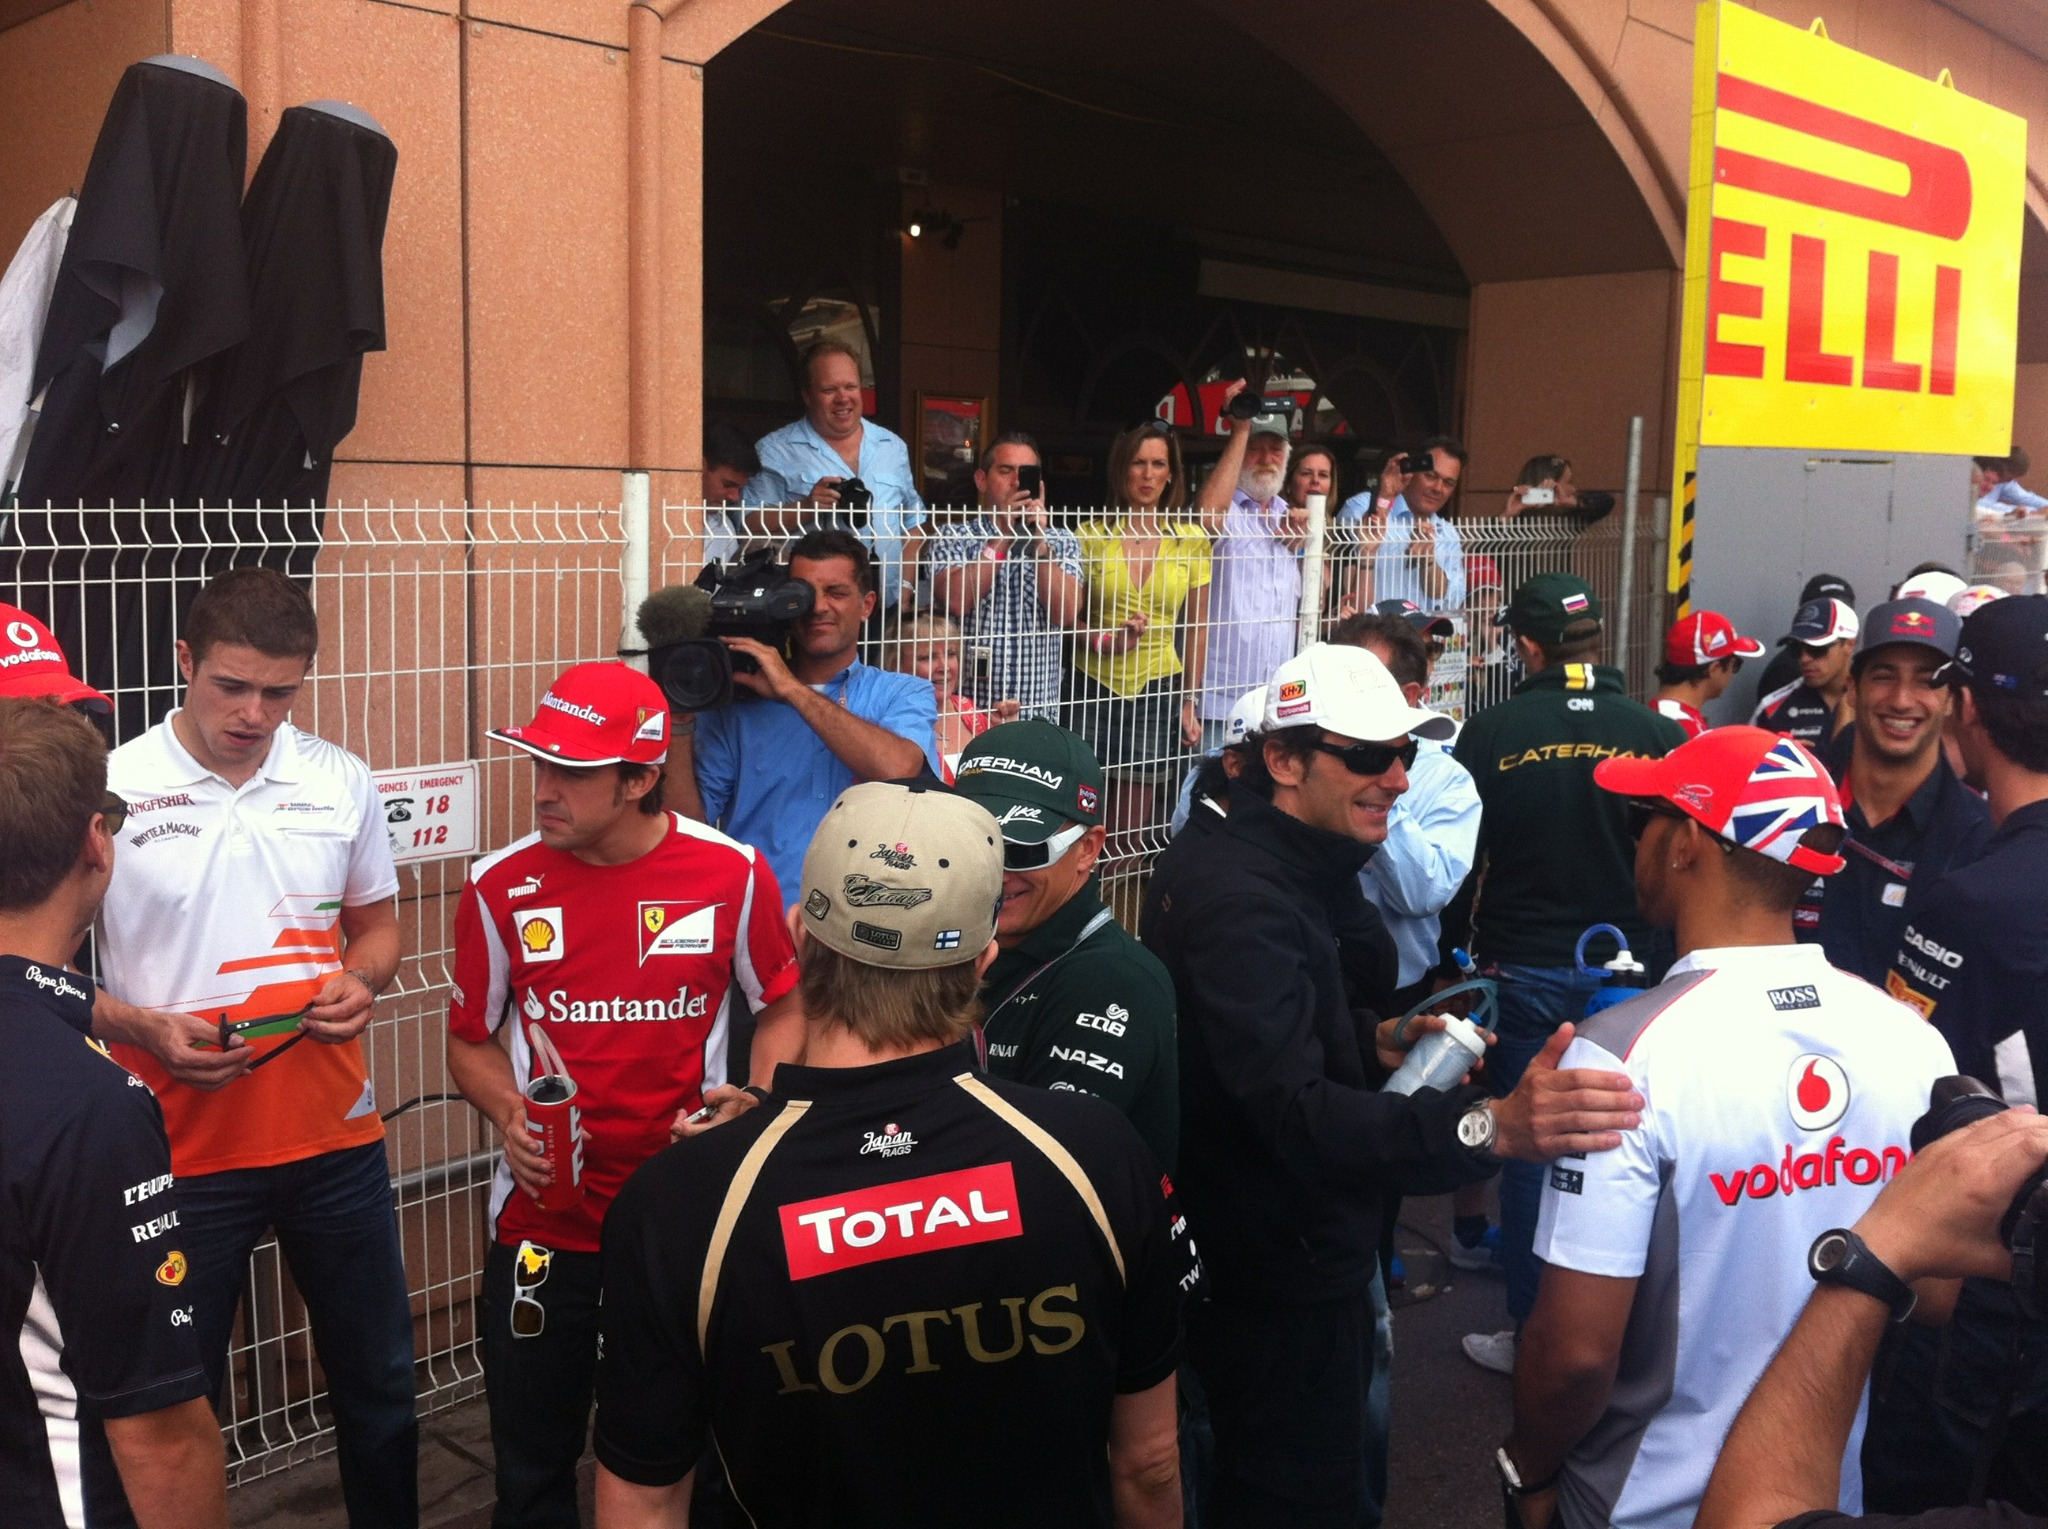 RT @TheFifthDriver: A shot of everyone gathering for the drivers' parade. @lewishamilton chats with our old friend @pedrodelarosa1 http: ...